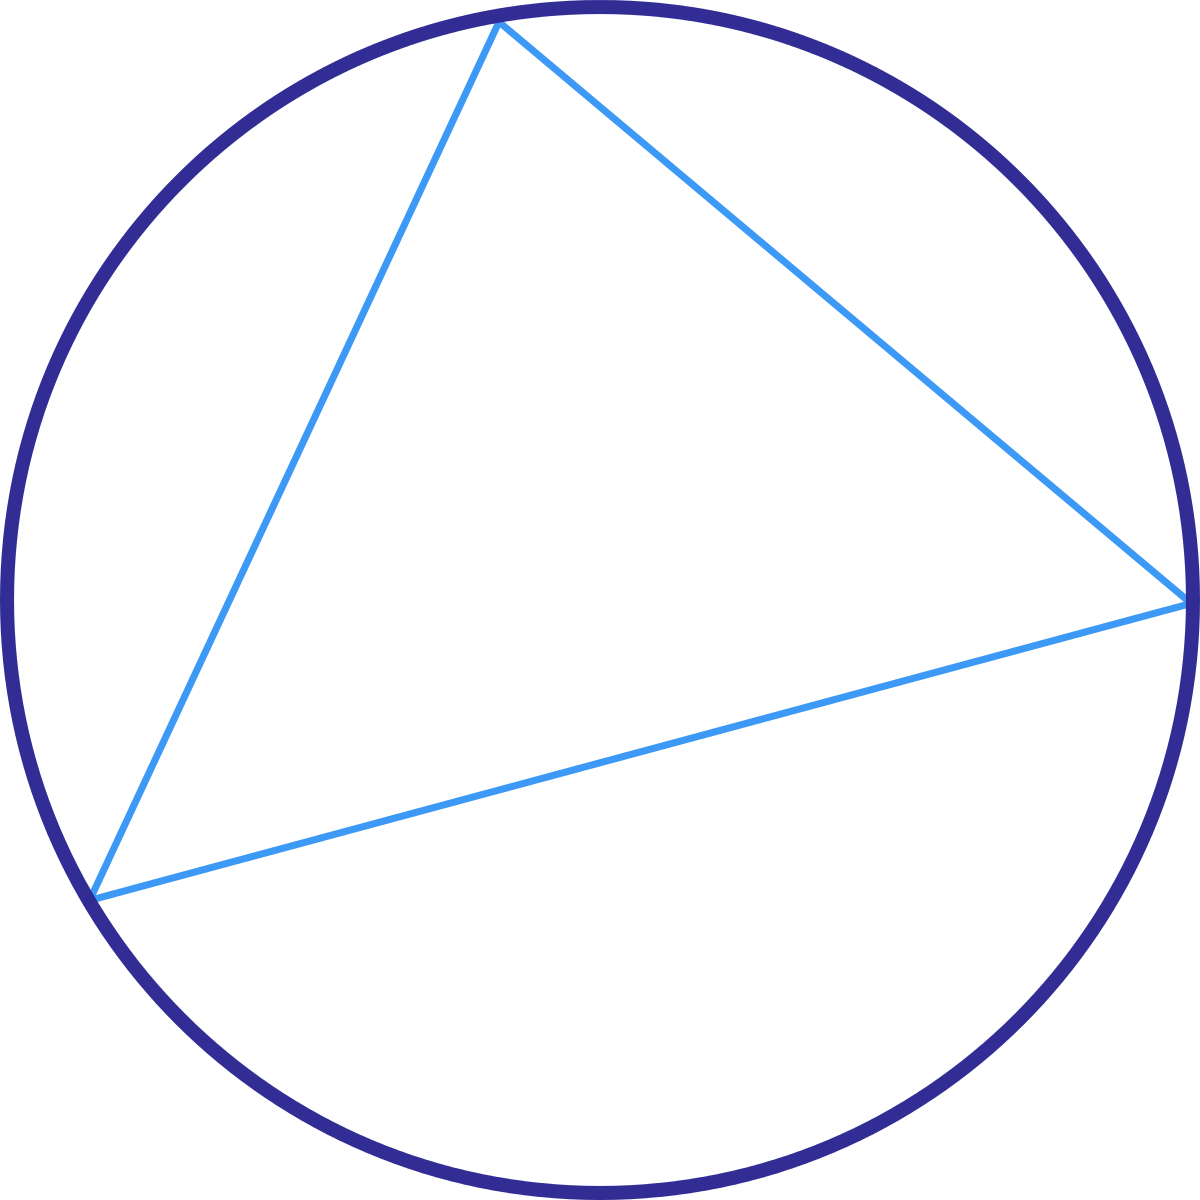 Note: An Equilateral Triangle With An Area Of 12√3 Also Has A Perimeter